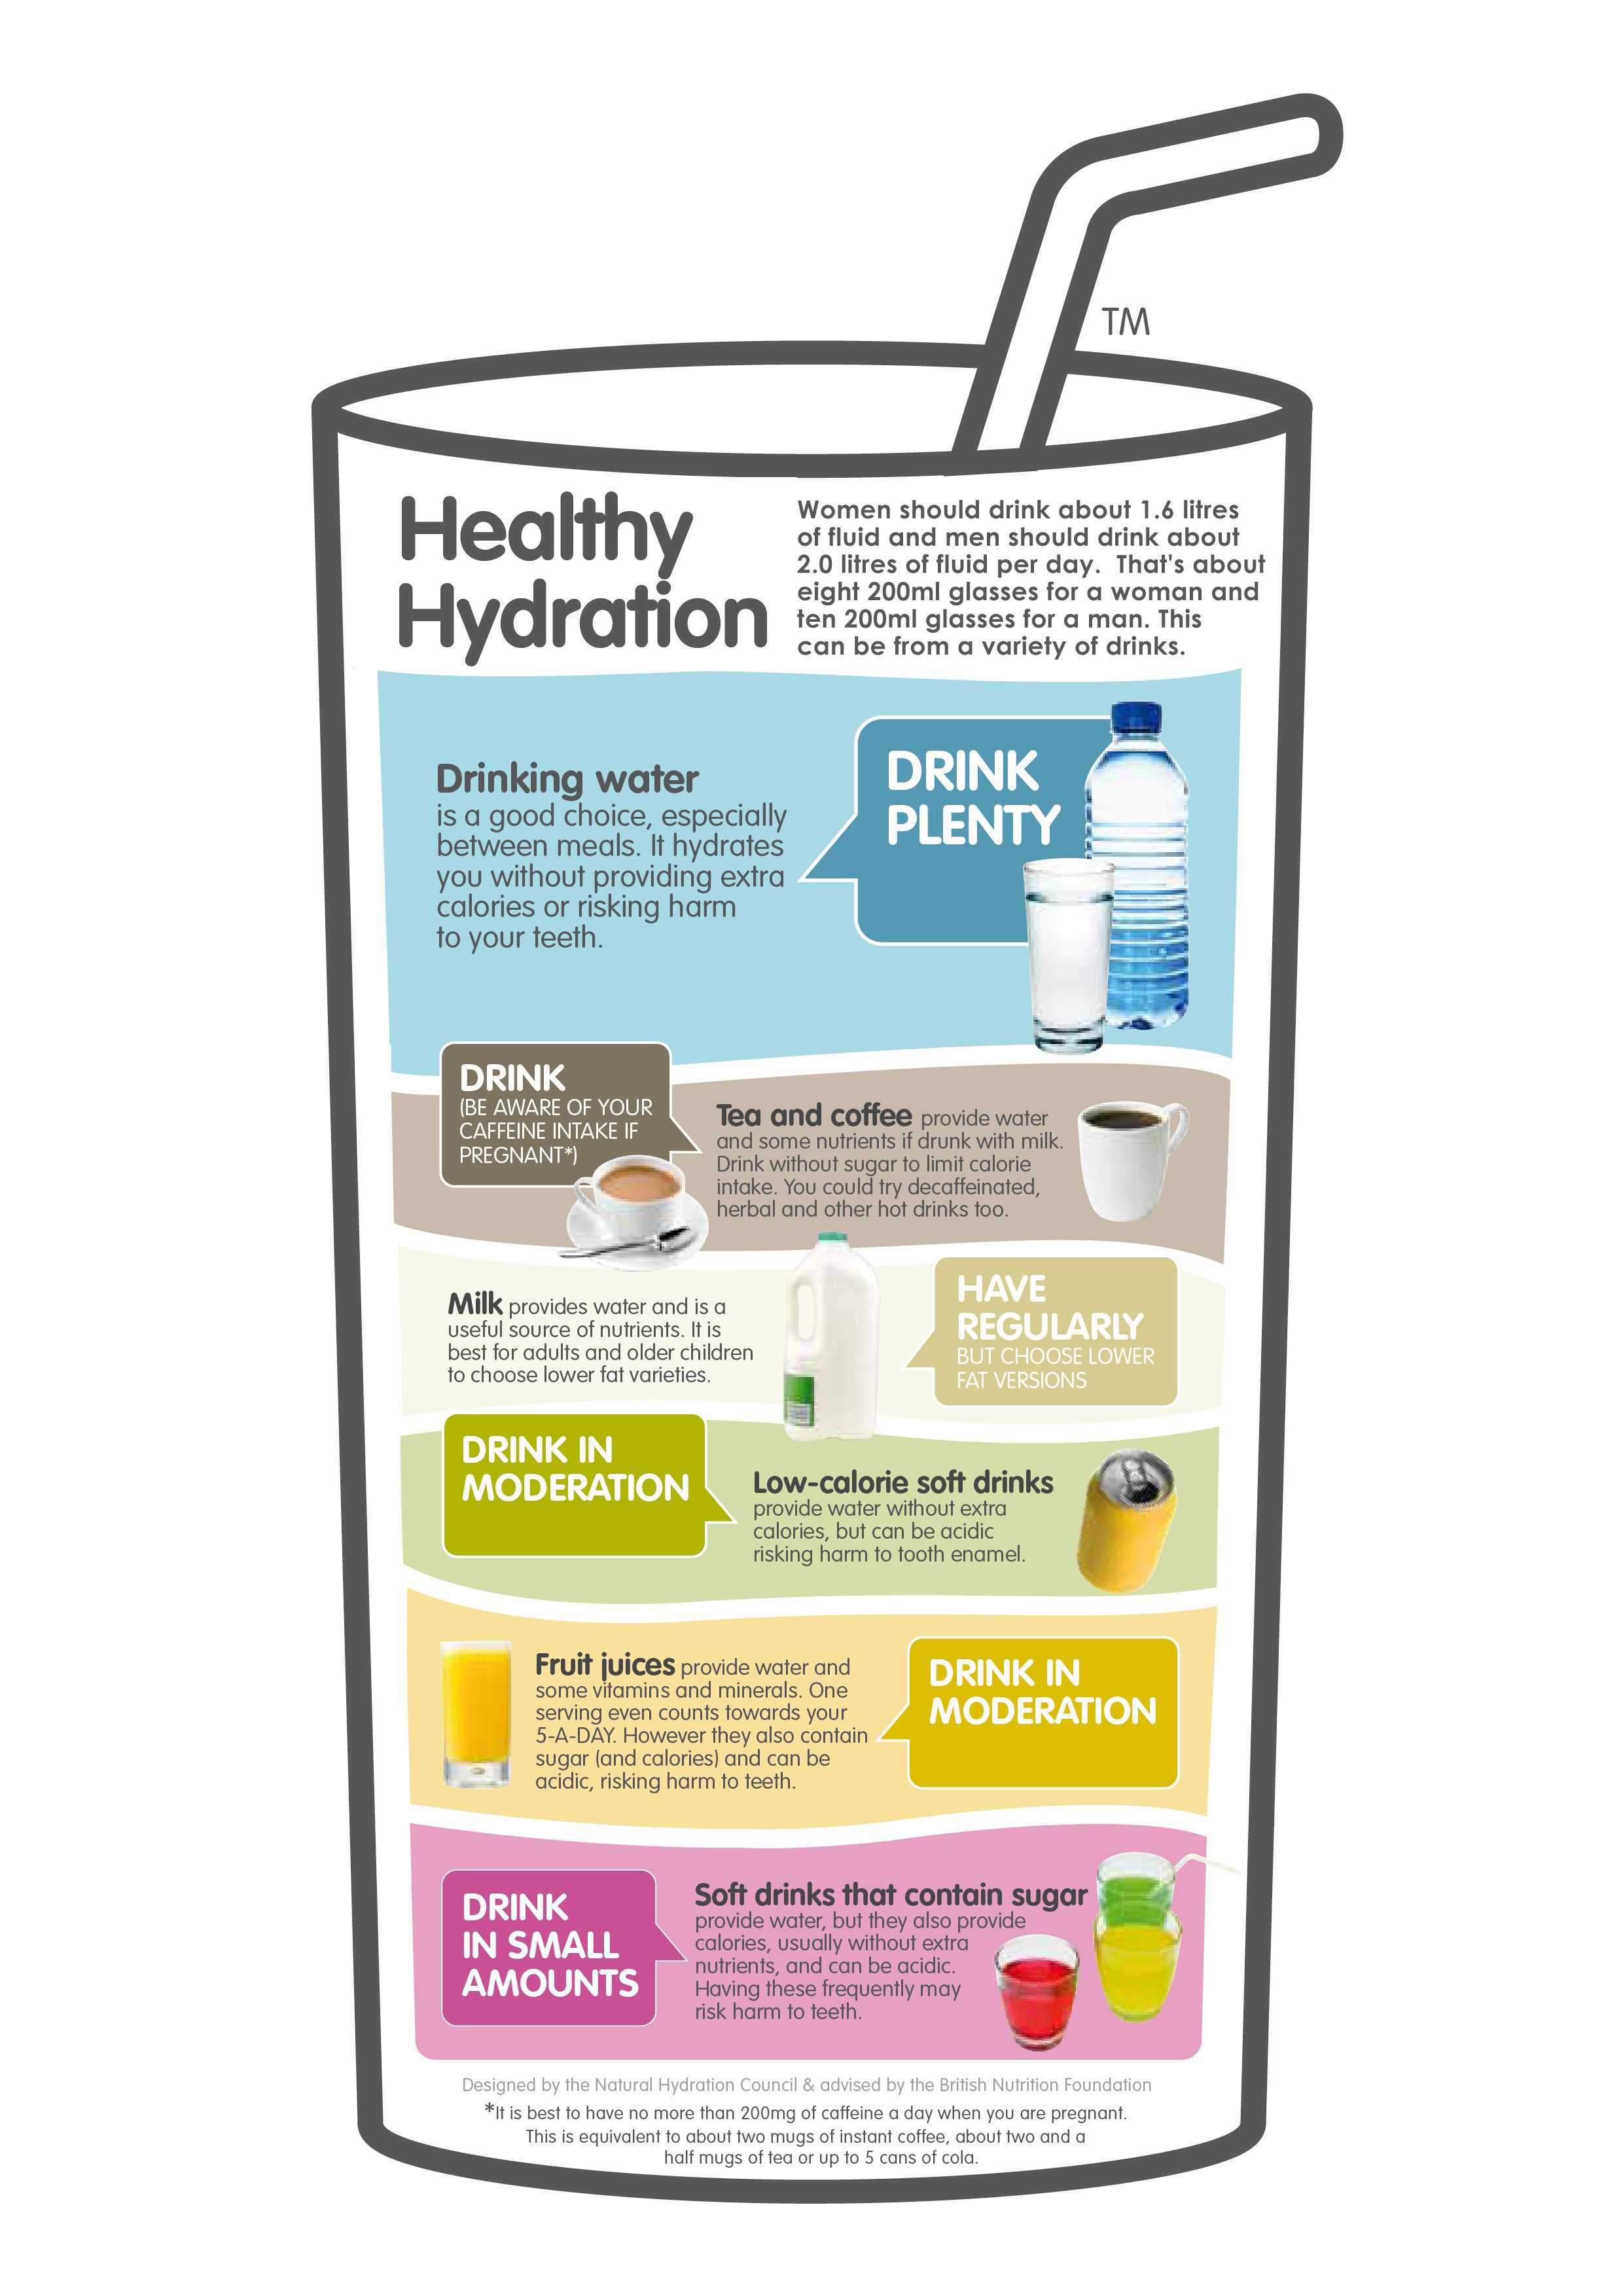 How many calories are found in water?